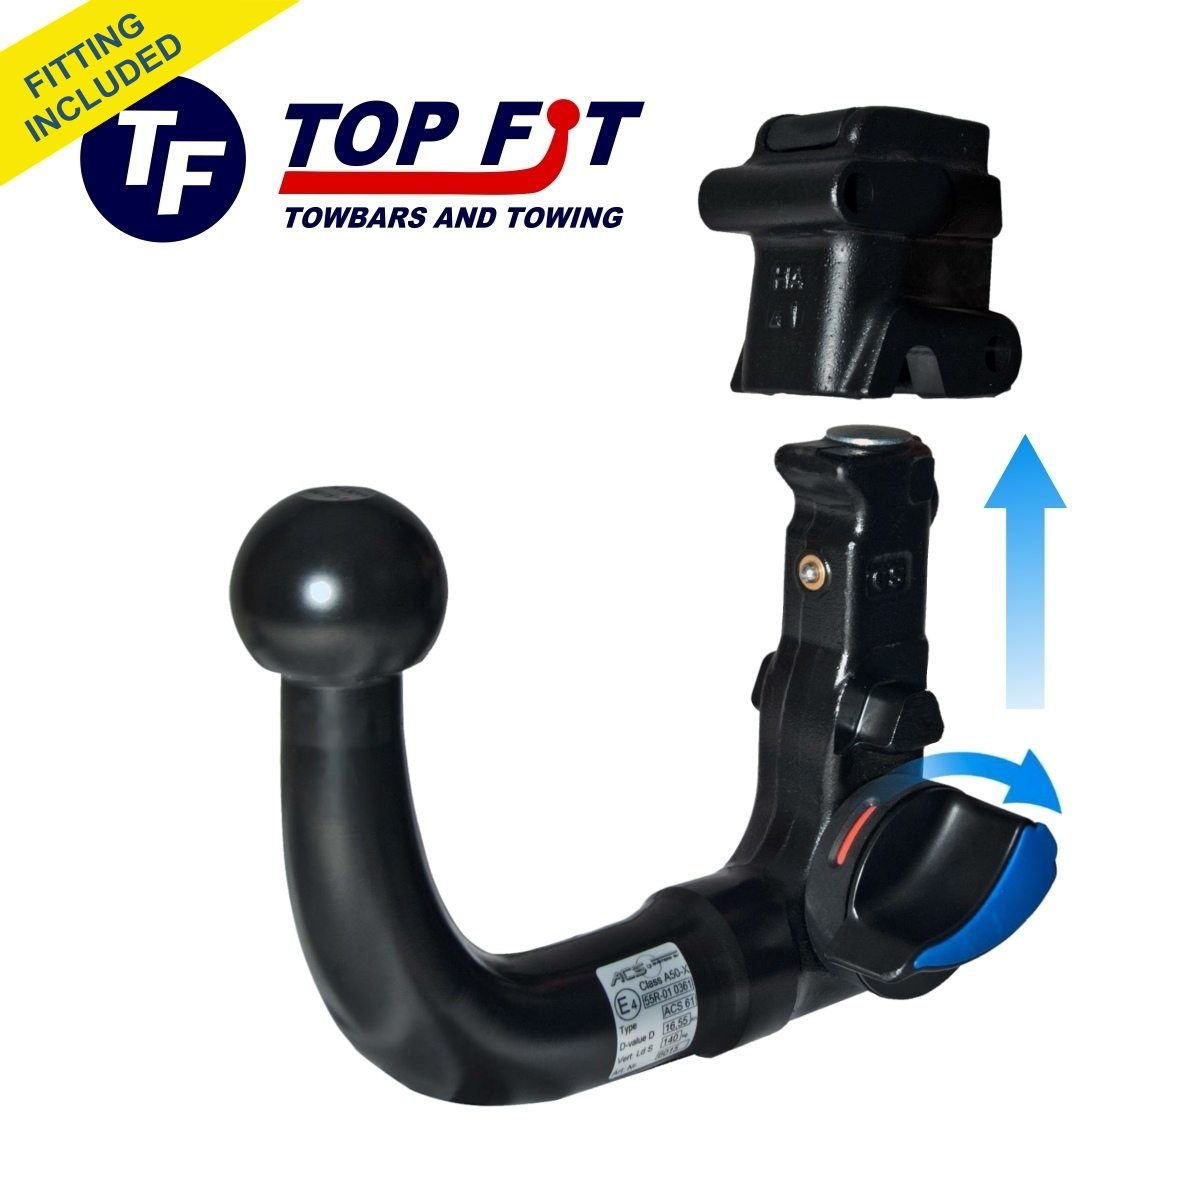 Vehicle Specific Wiring 109 Page 4 Top Fit Towbars And Towing Peugeot 207 Towbar 308 Hatchback 2007 To 2013 Detachable Swan Neck